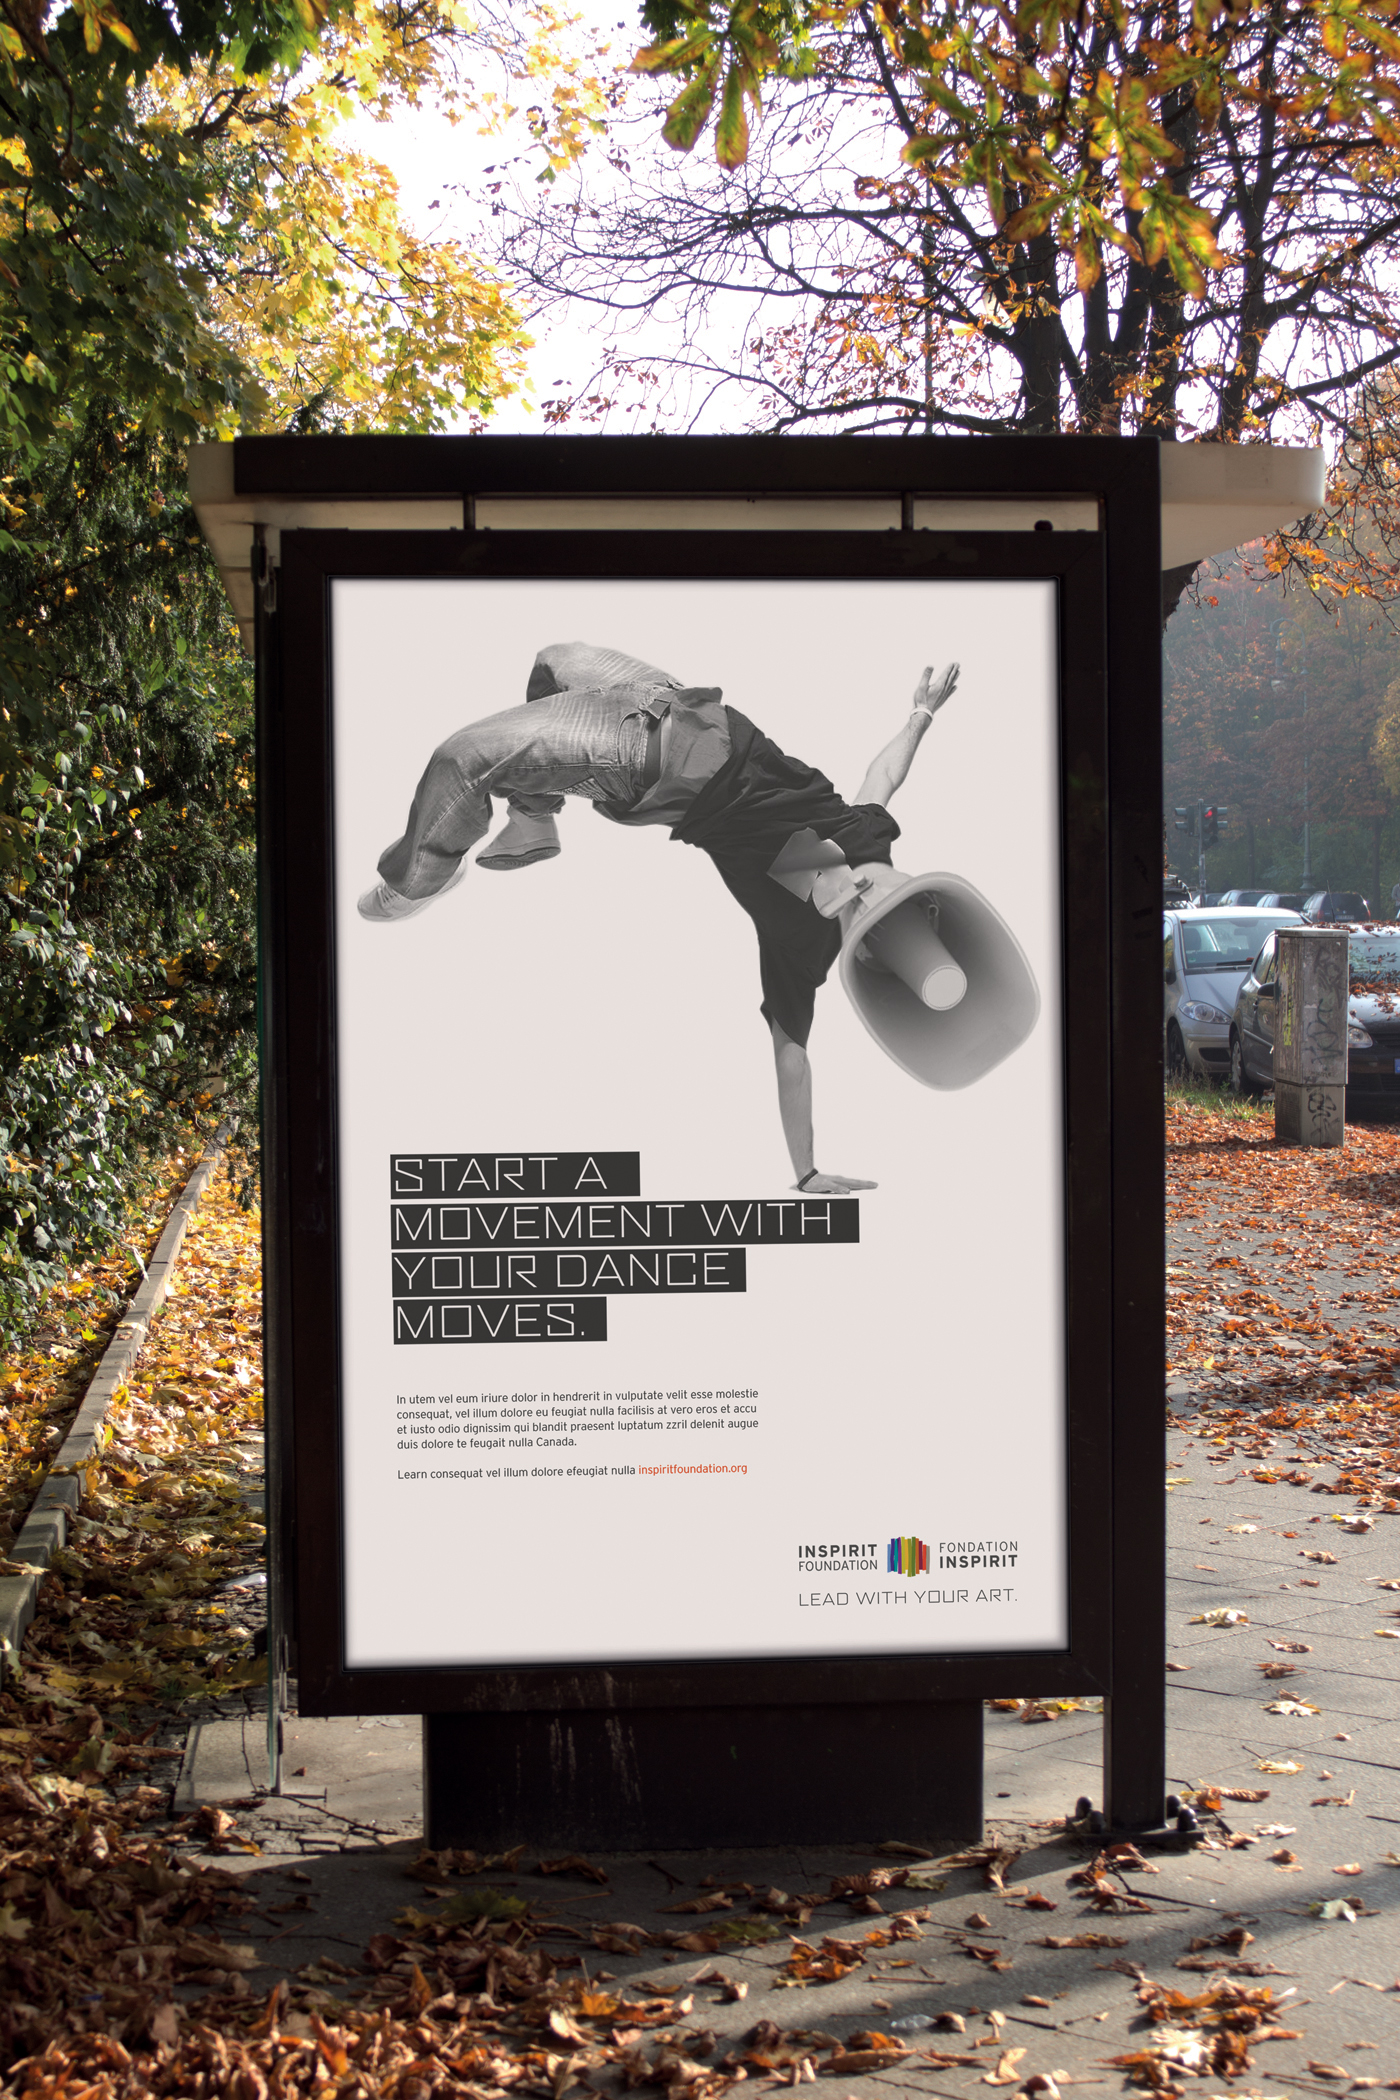 A bus poster campaign with inspirit that supports young people to build a more inclusive world. A black and white image with a man break dancing and a speaker on his head. Minimal design with powerful imagery and collage art.